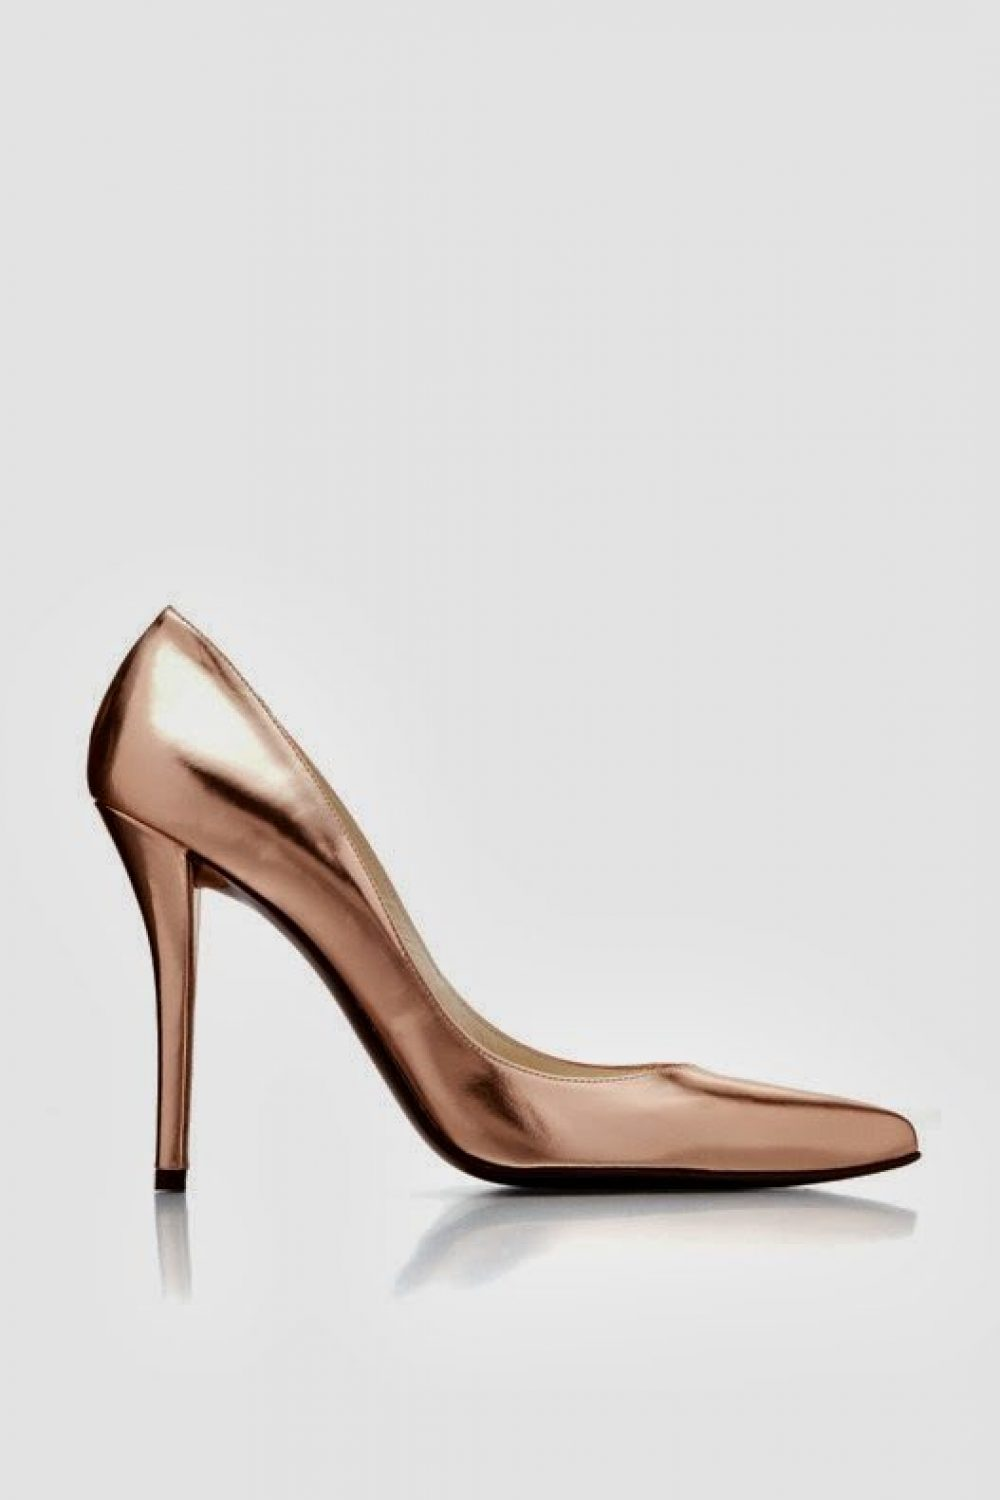 Hooked on Rose Gold Heels